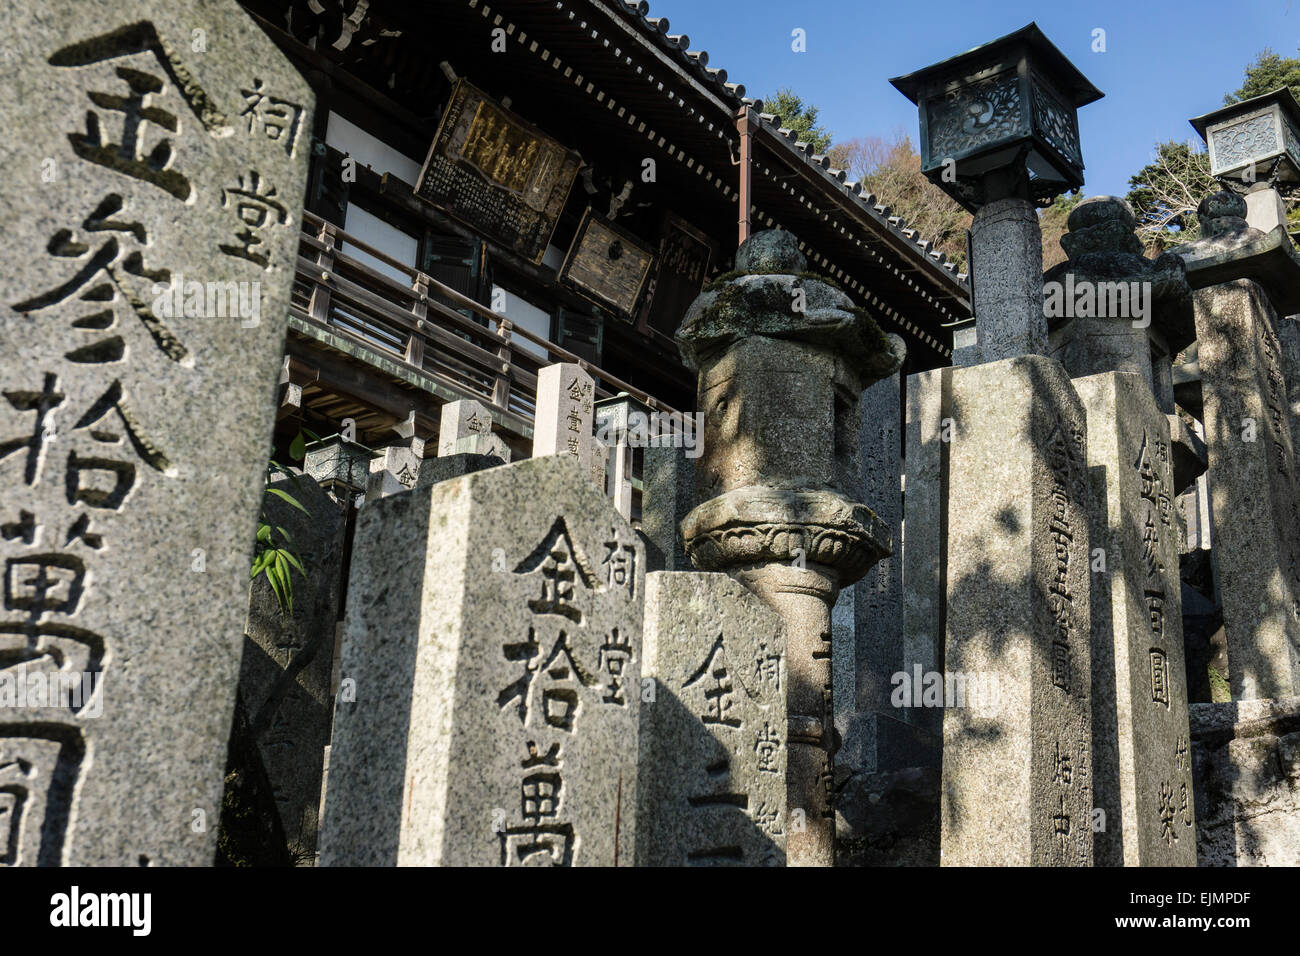 View of gravestones and lanterns at Nigatsu-do Hall in Todaiji Temple, Nara, Japan Stock Photo